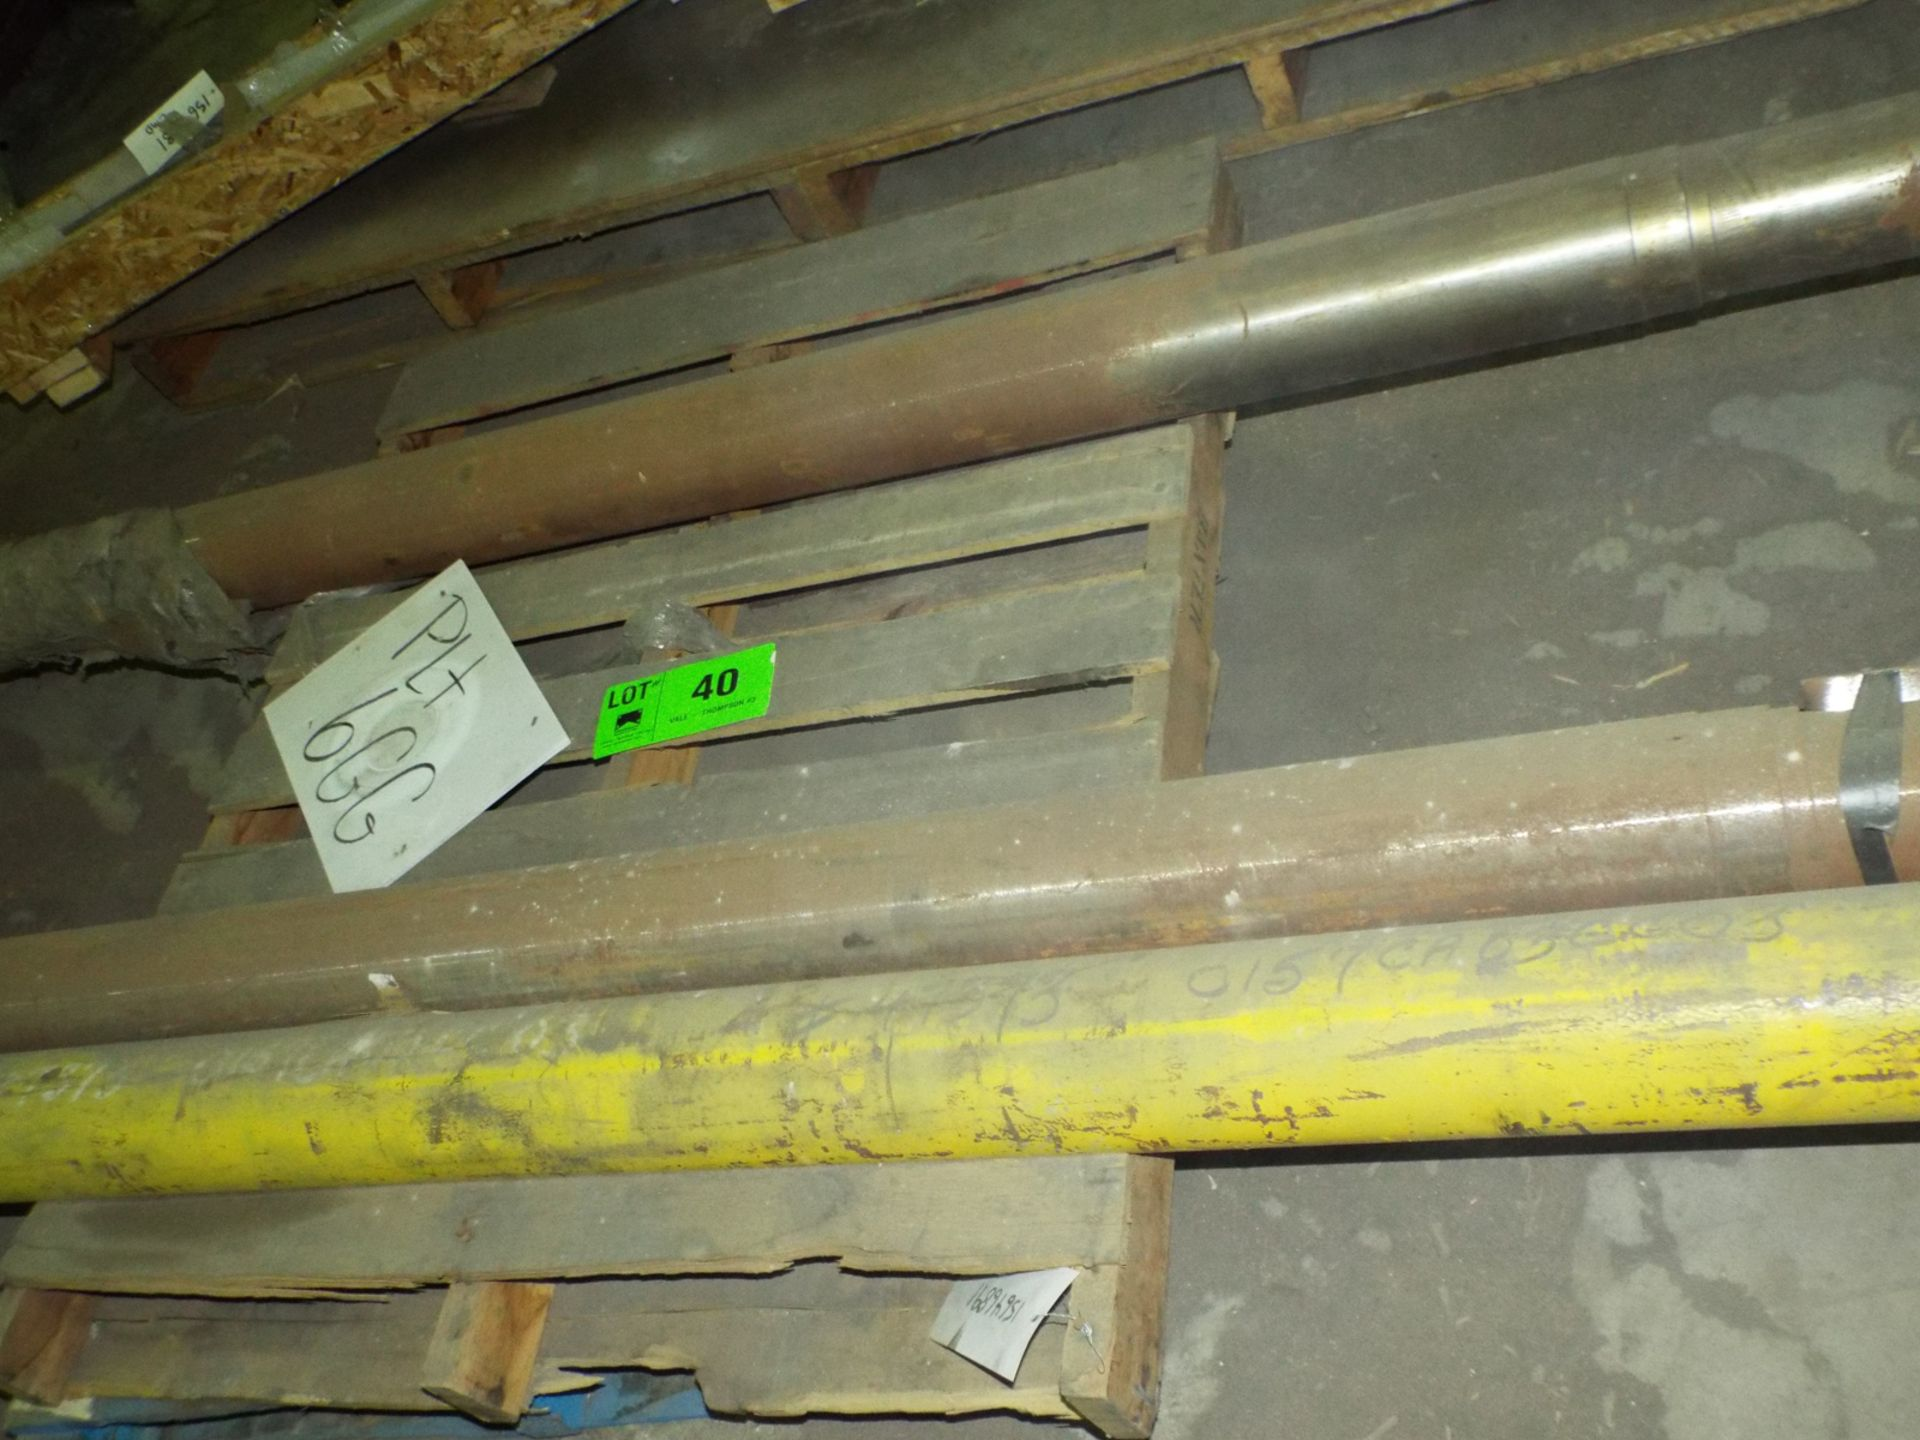 Lot 40 - LOT/ CONTENTS OF SKID - KOERING-PROVINCIAL S-11 60 TON CRANE SHAFT ASSEMBLY (PLT 6GG)